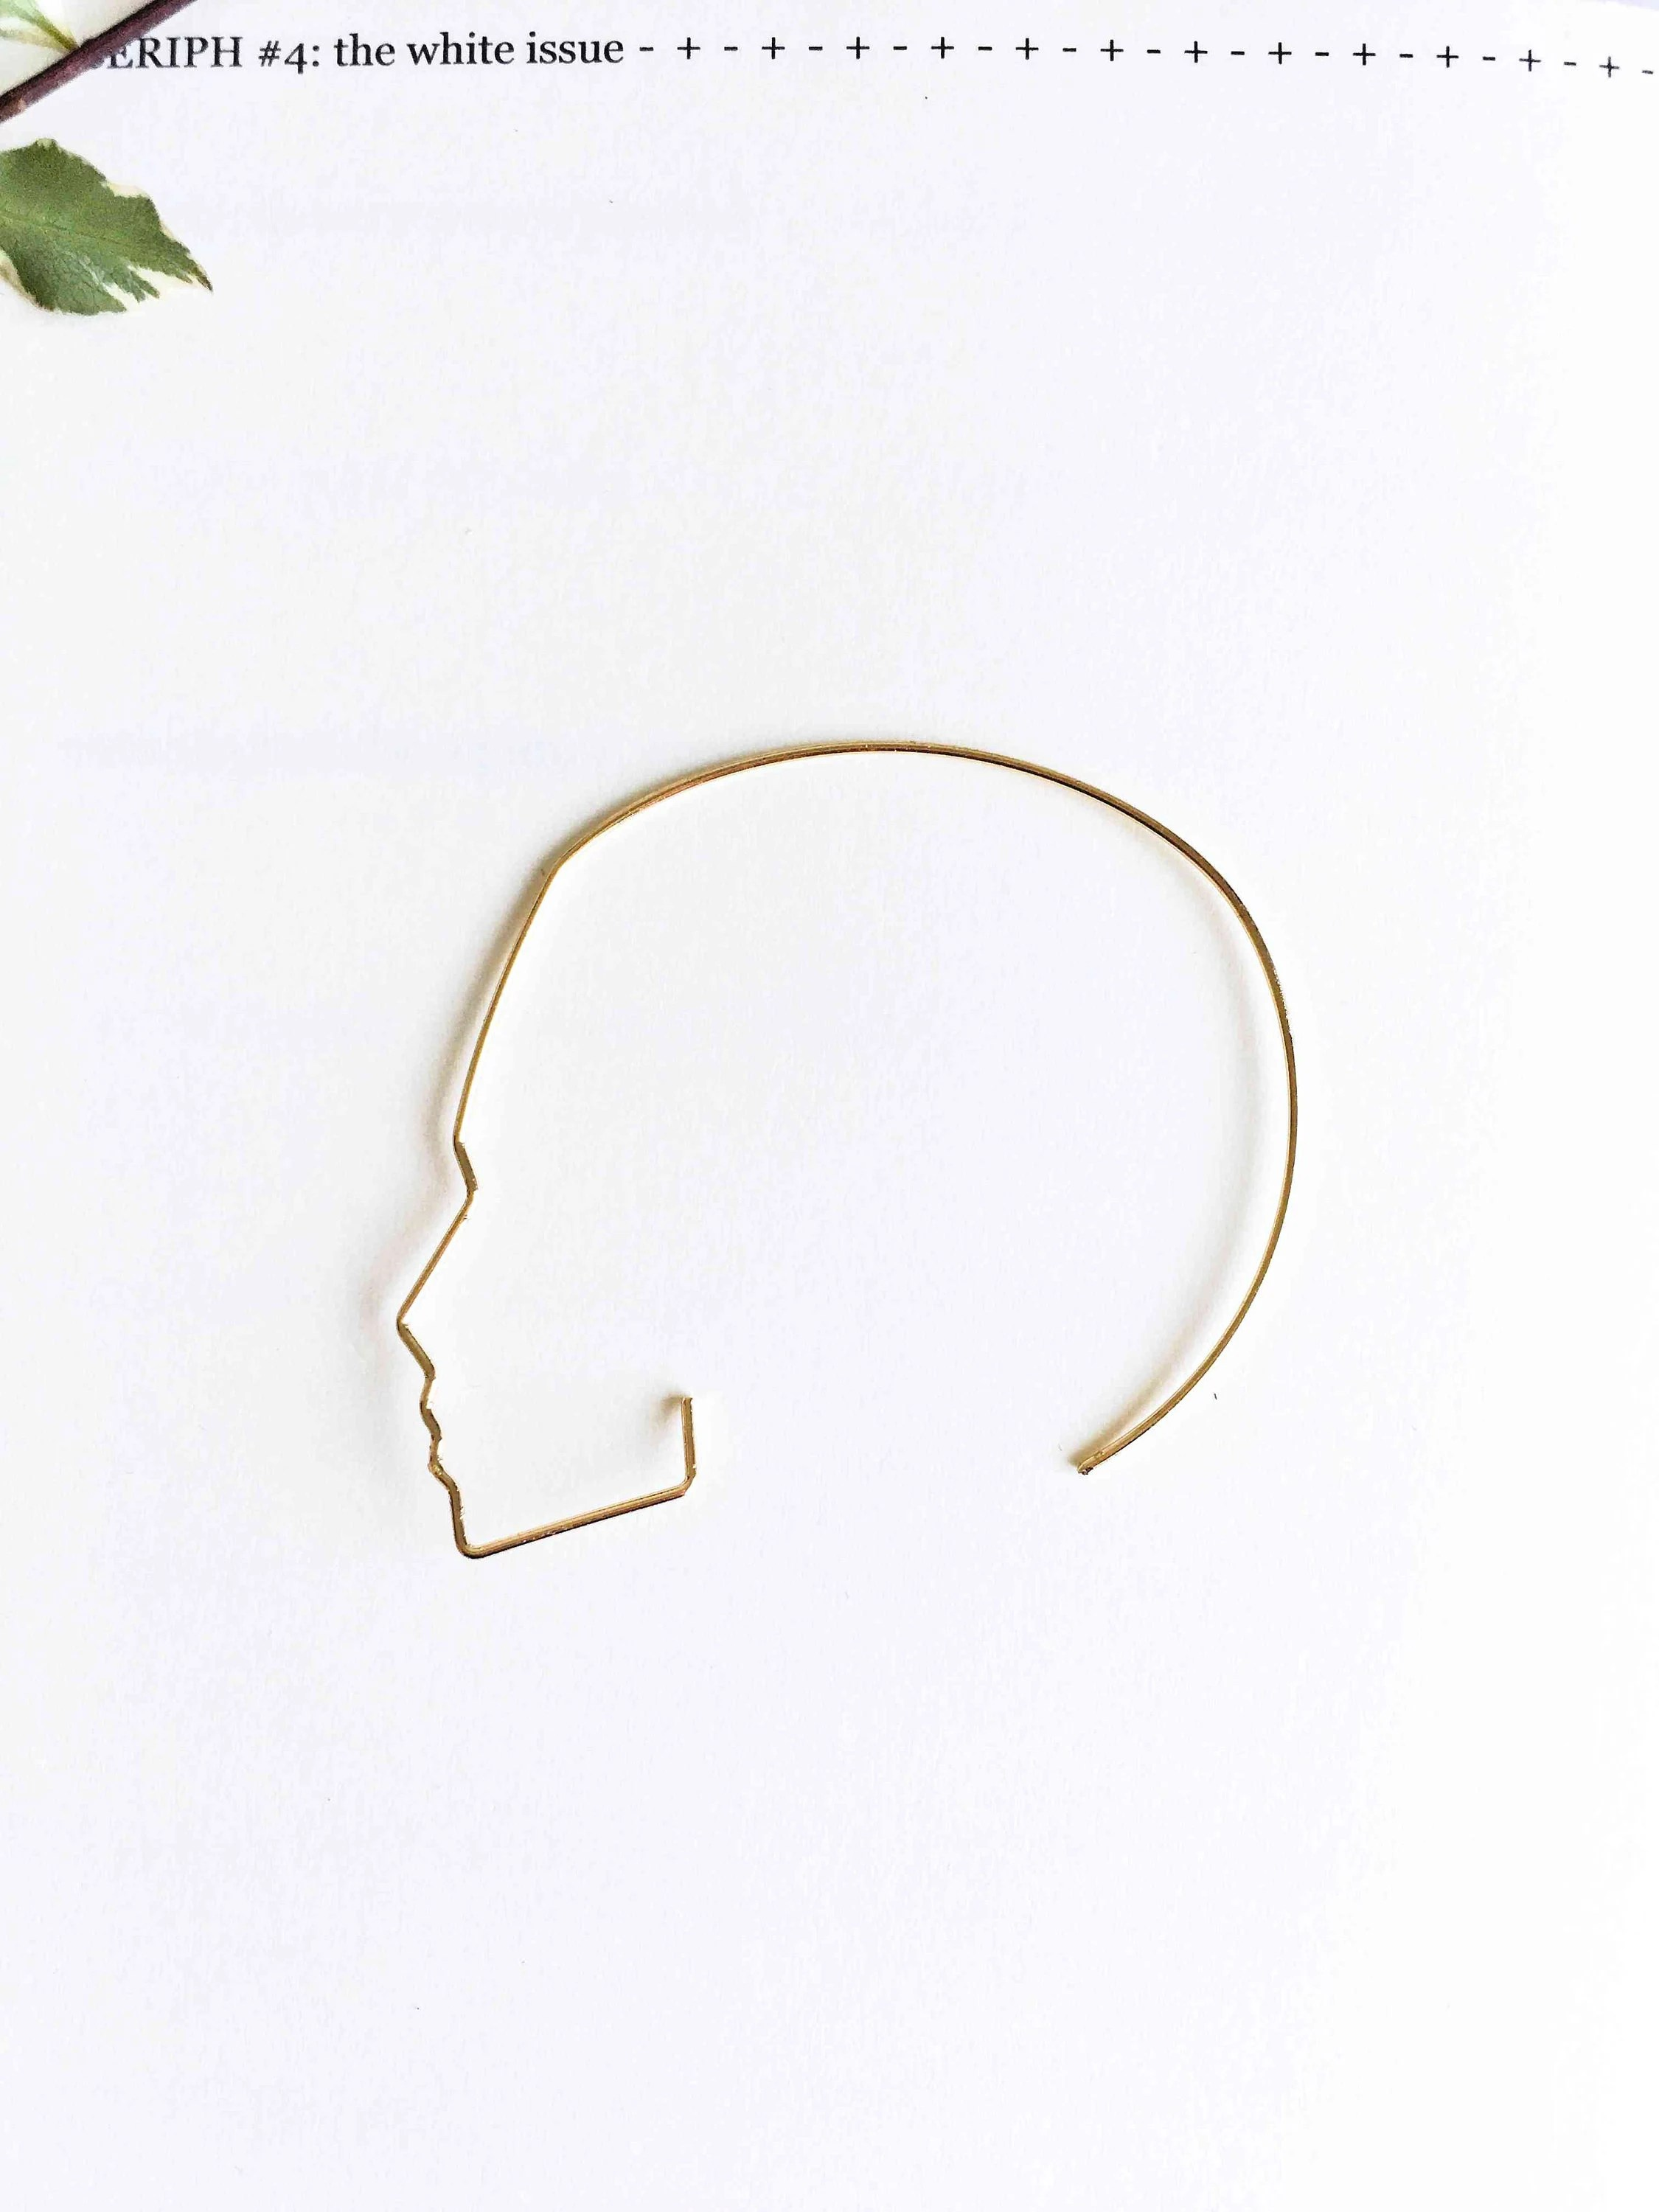 Side profile face ear wires face earrings minimal picasso